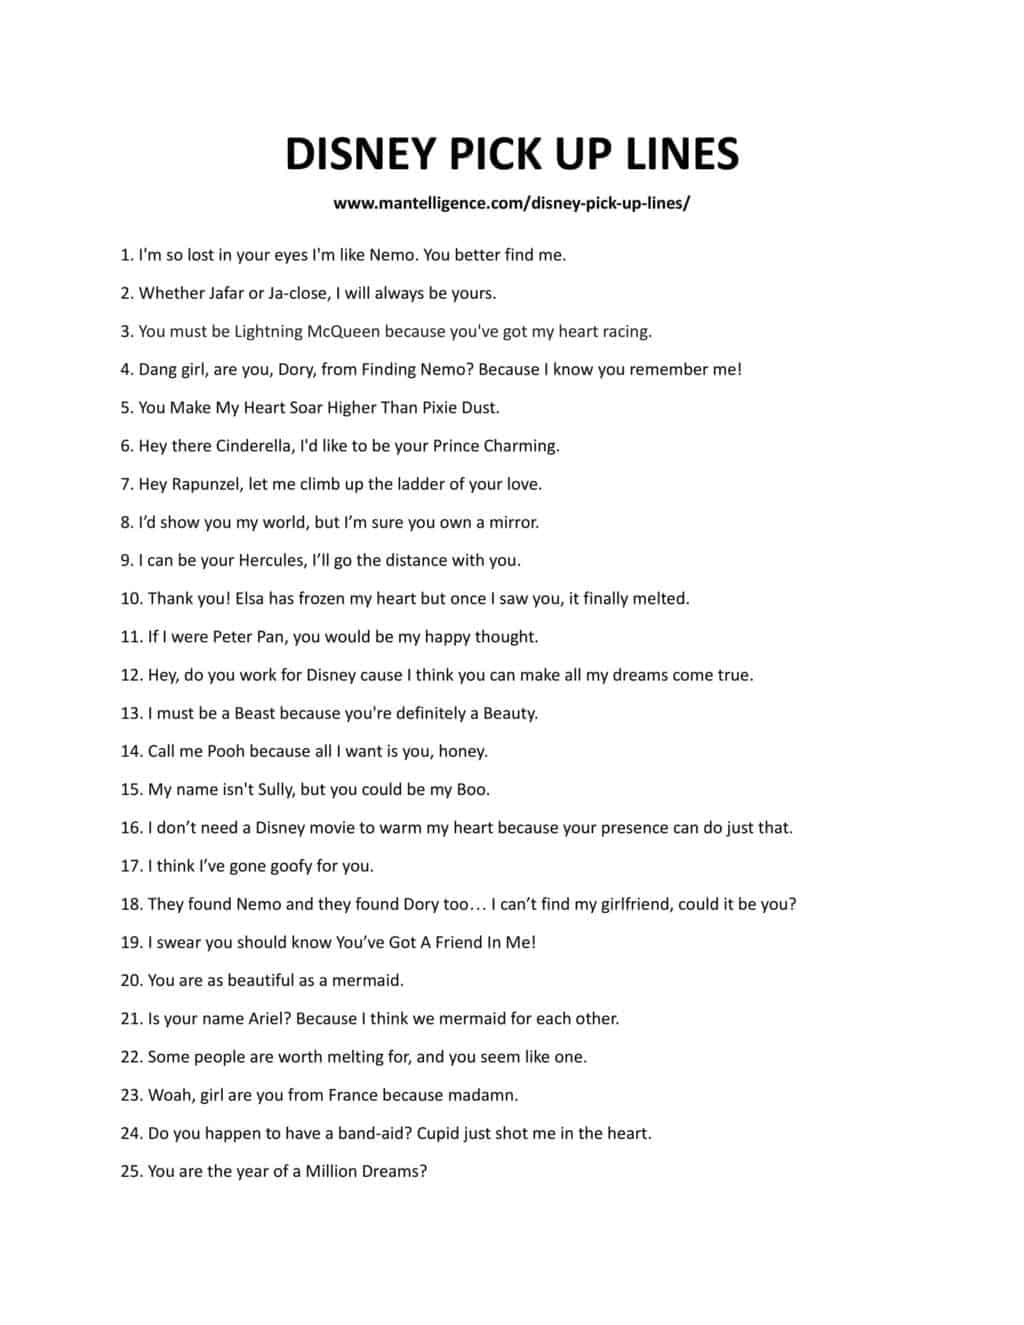 Downloadable list of questions